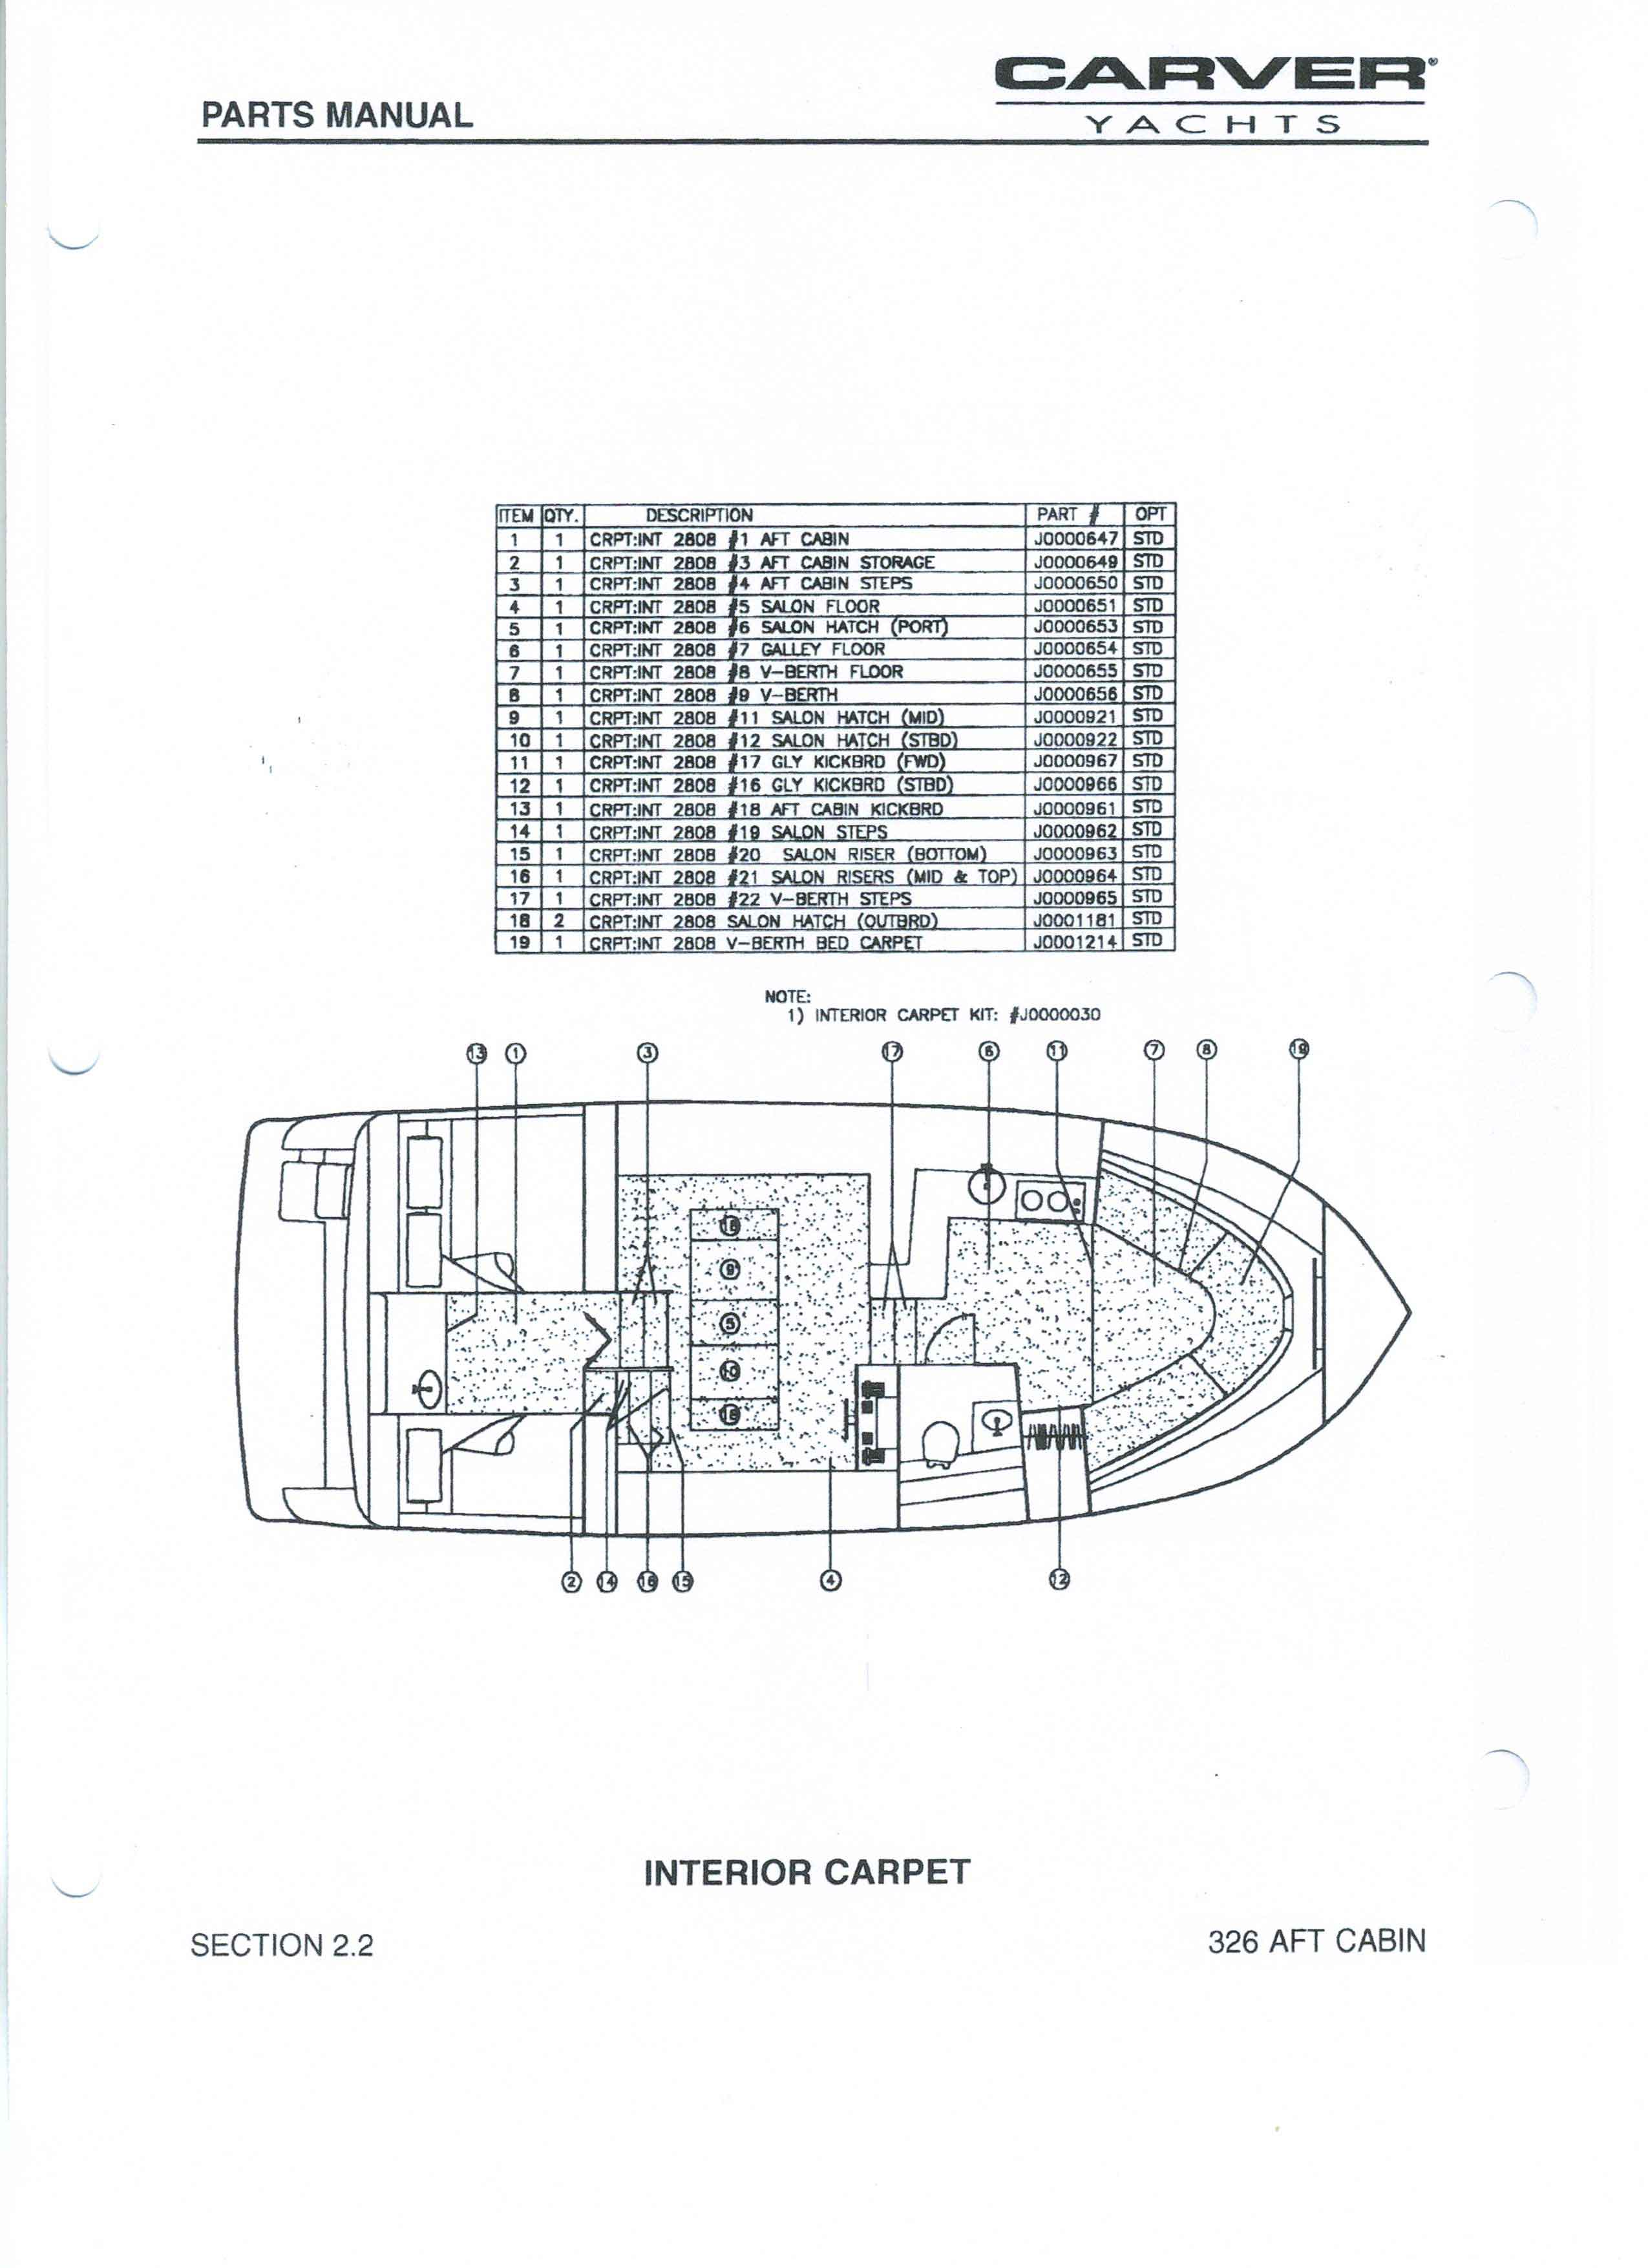 controls and cables electrical components engine fuel